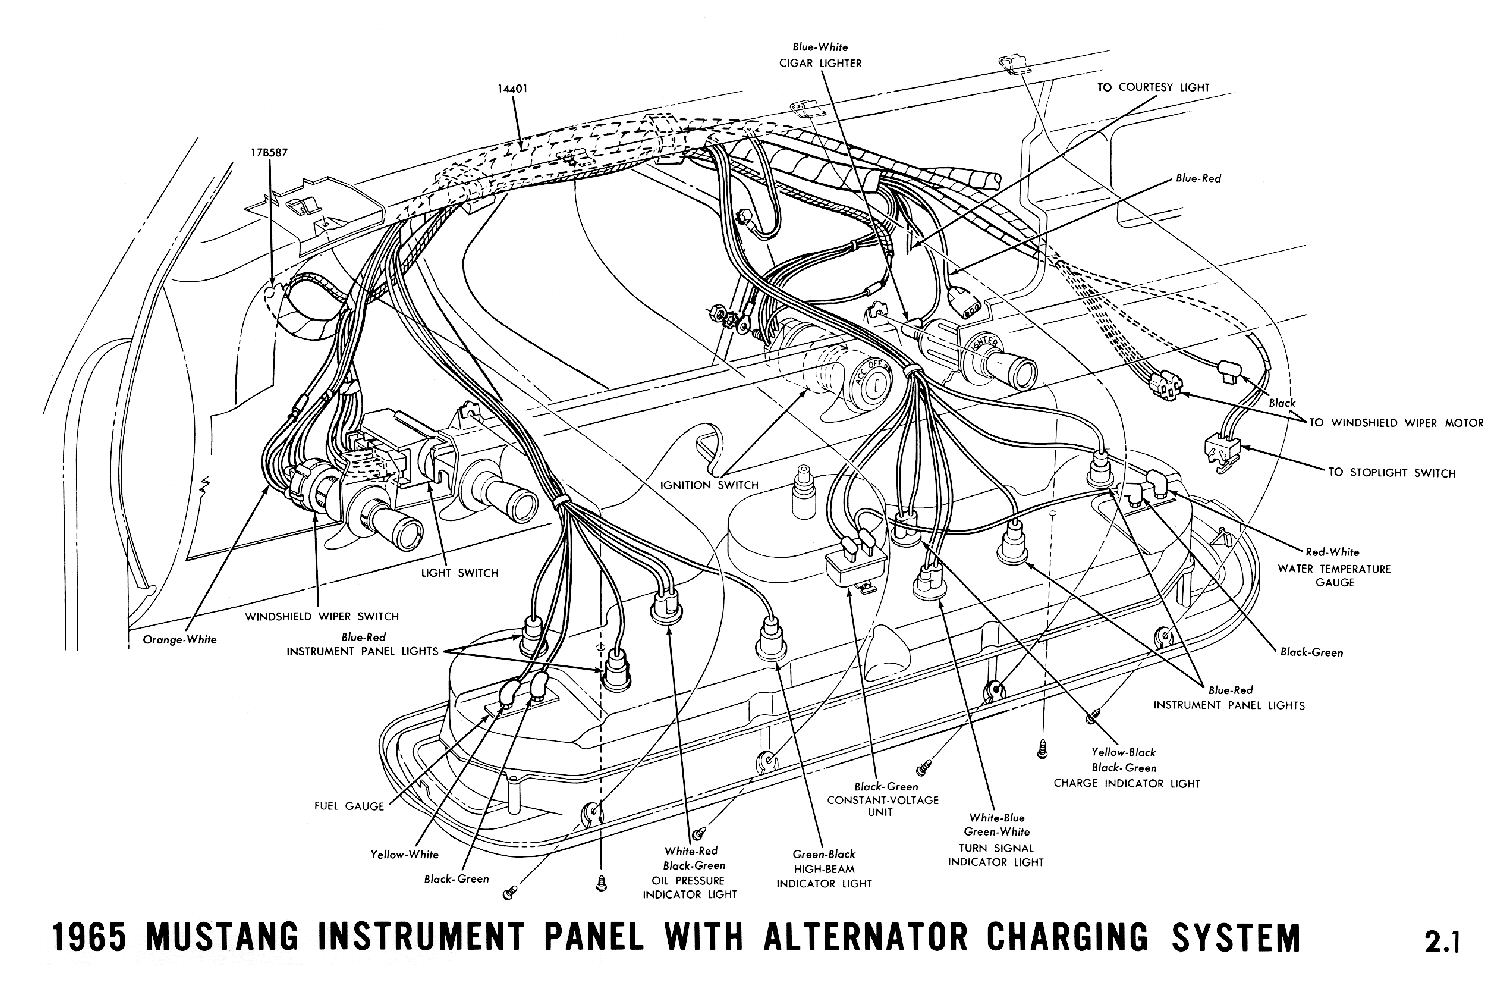 65 mustang gt wiring diagram wiring diagram 1965 mustang wiring diagrams average joe restoration rh averagejoerestoration com 1965 mustang gt wiring diagram 65 publicscrutiny Images